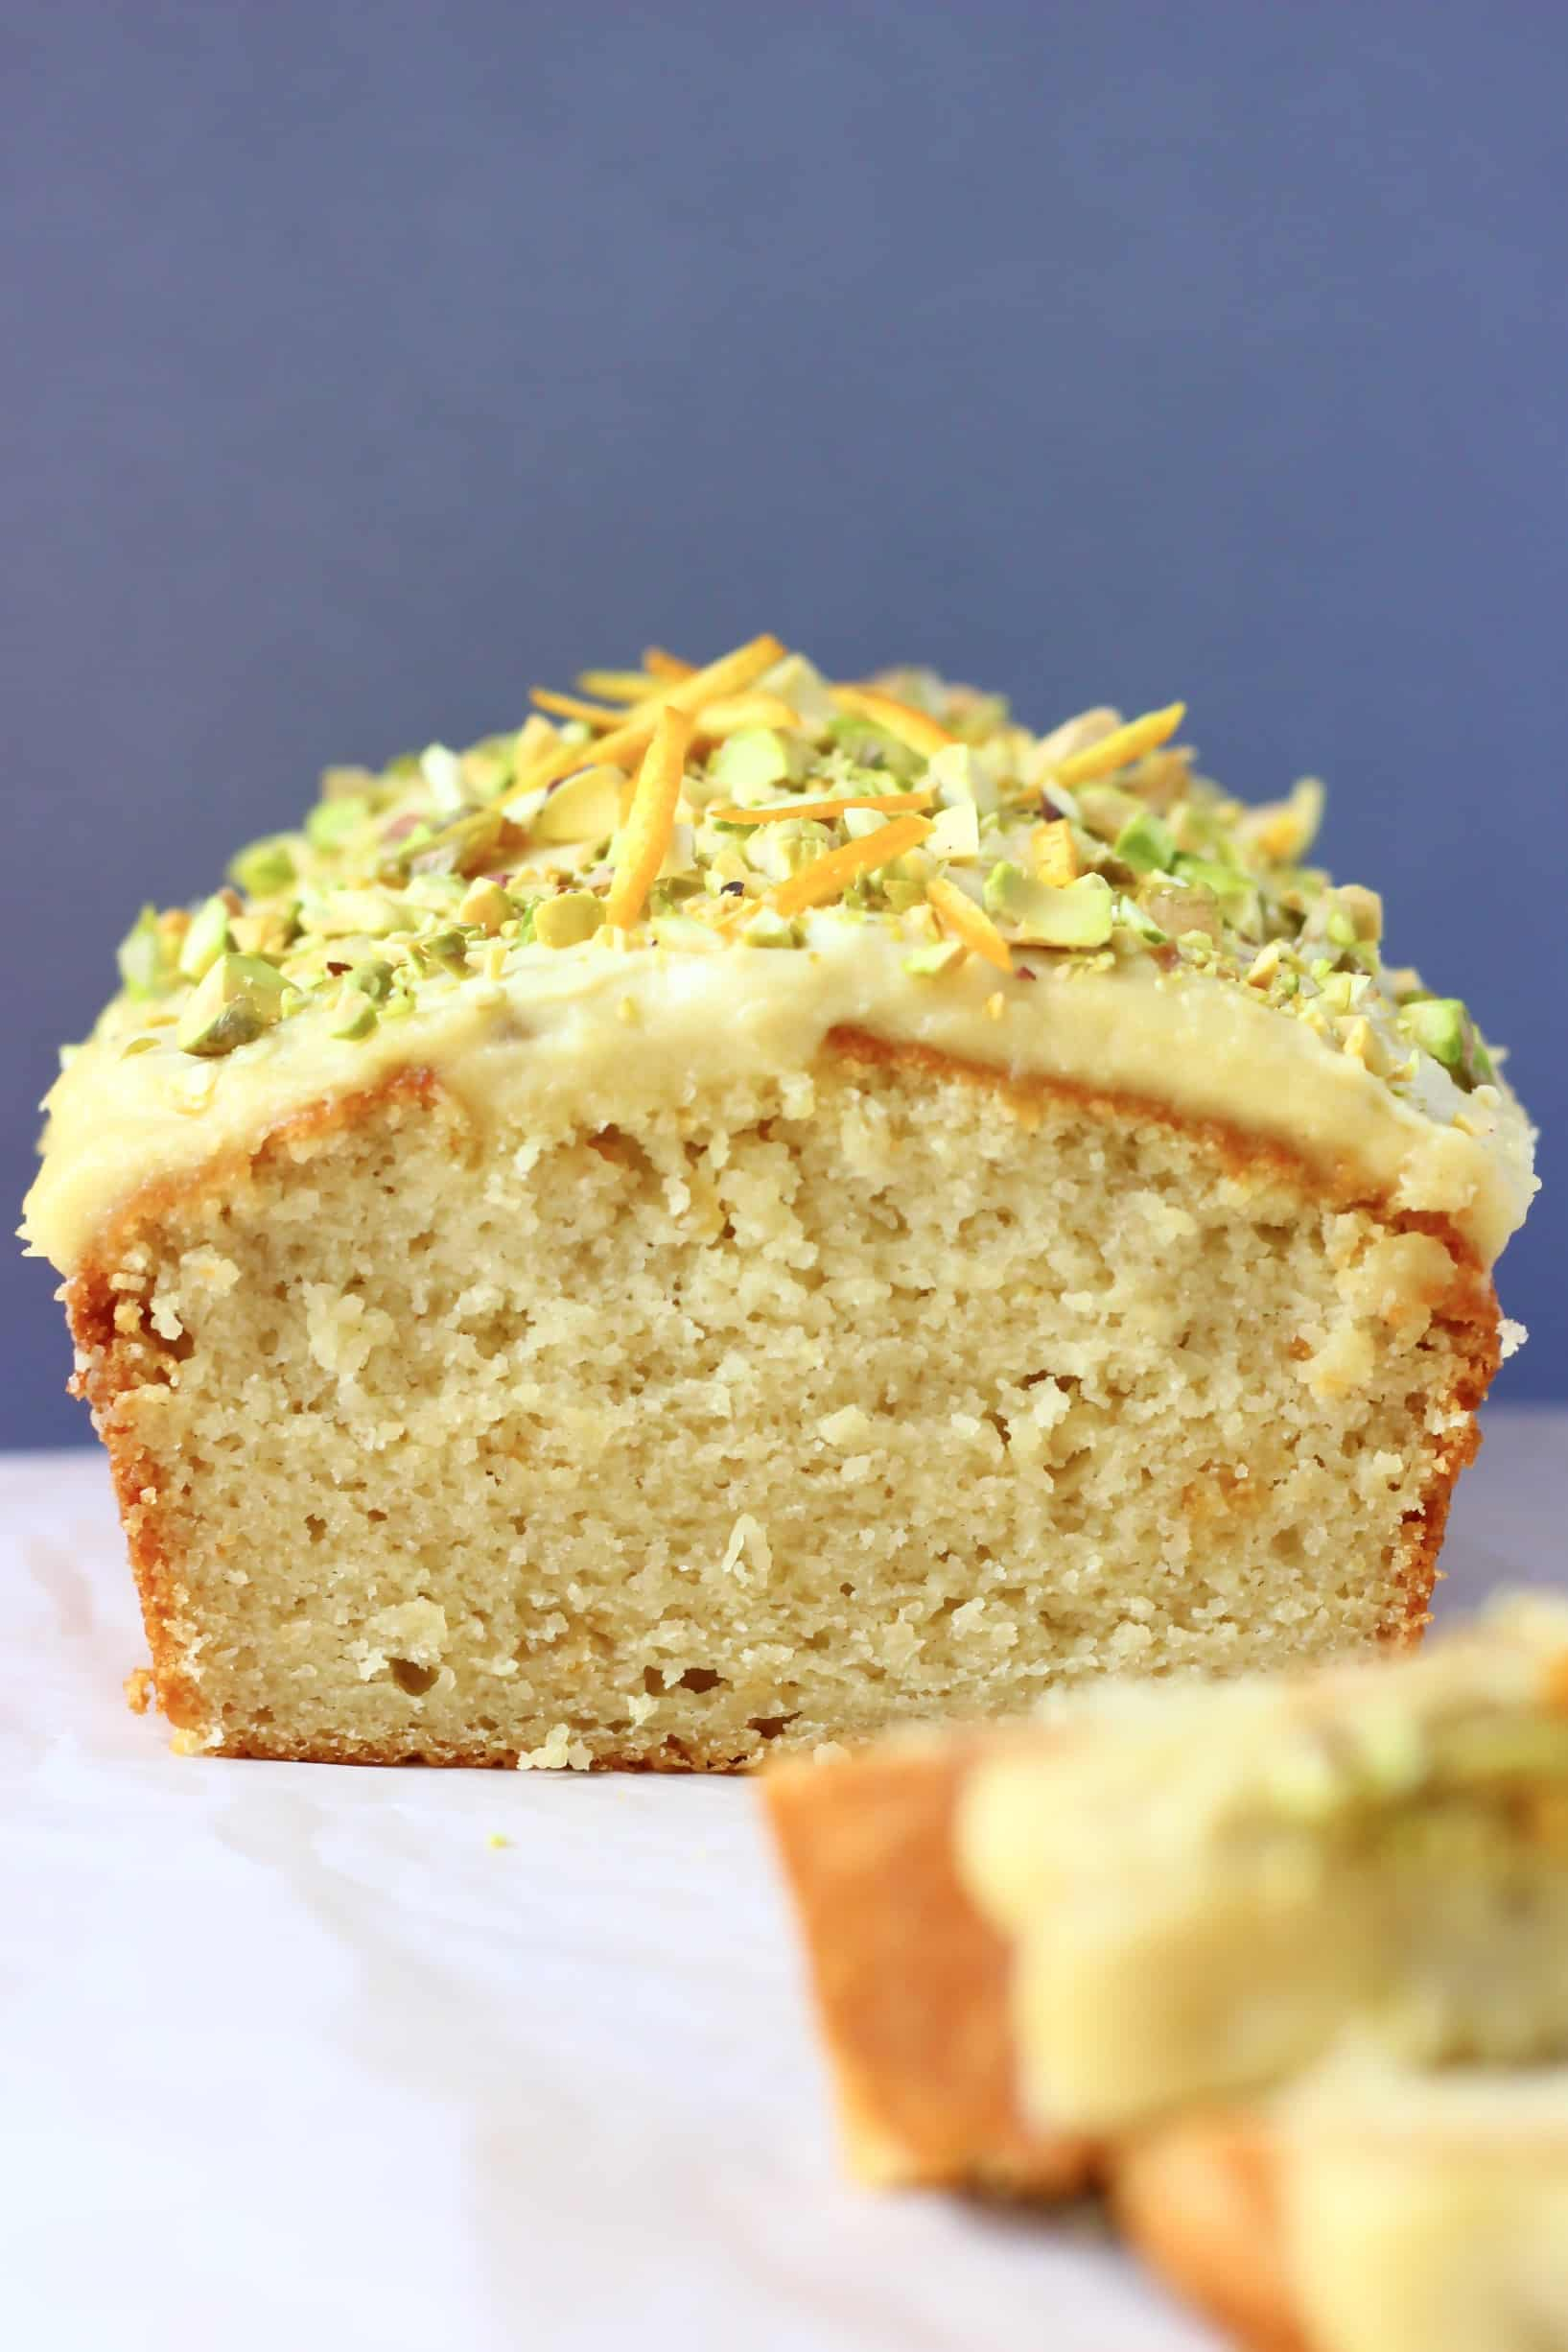 A loaf of vegan orange bread topped with frosting and chopped pistachios with two slices next to it